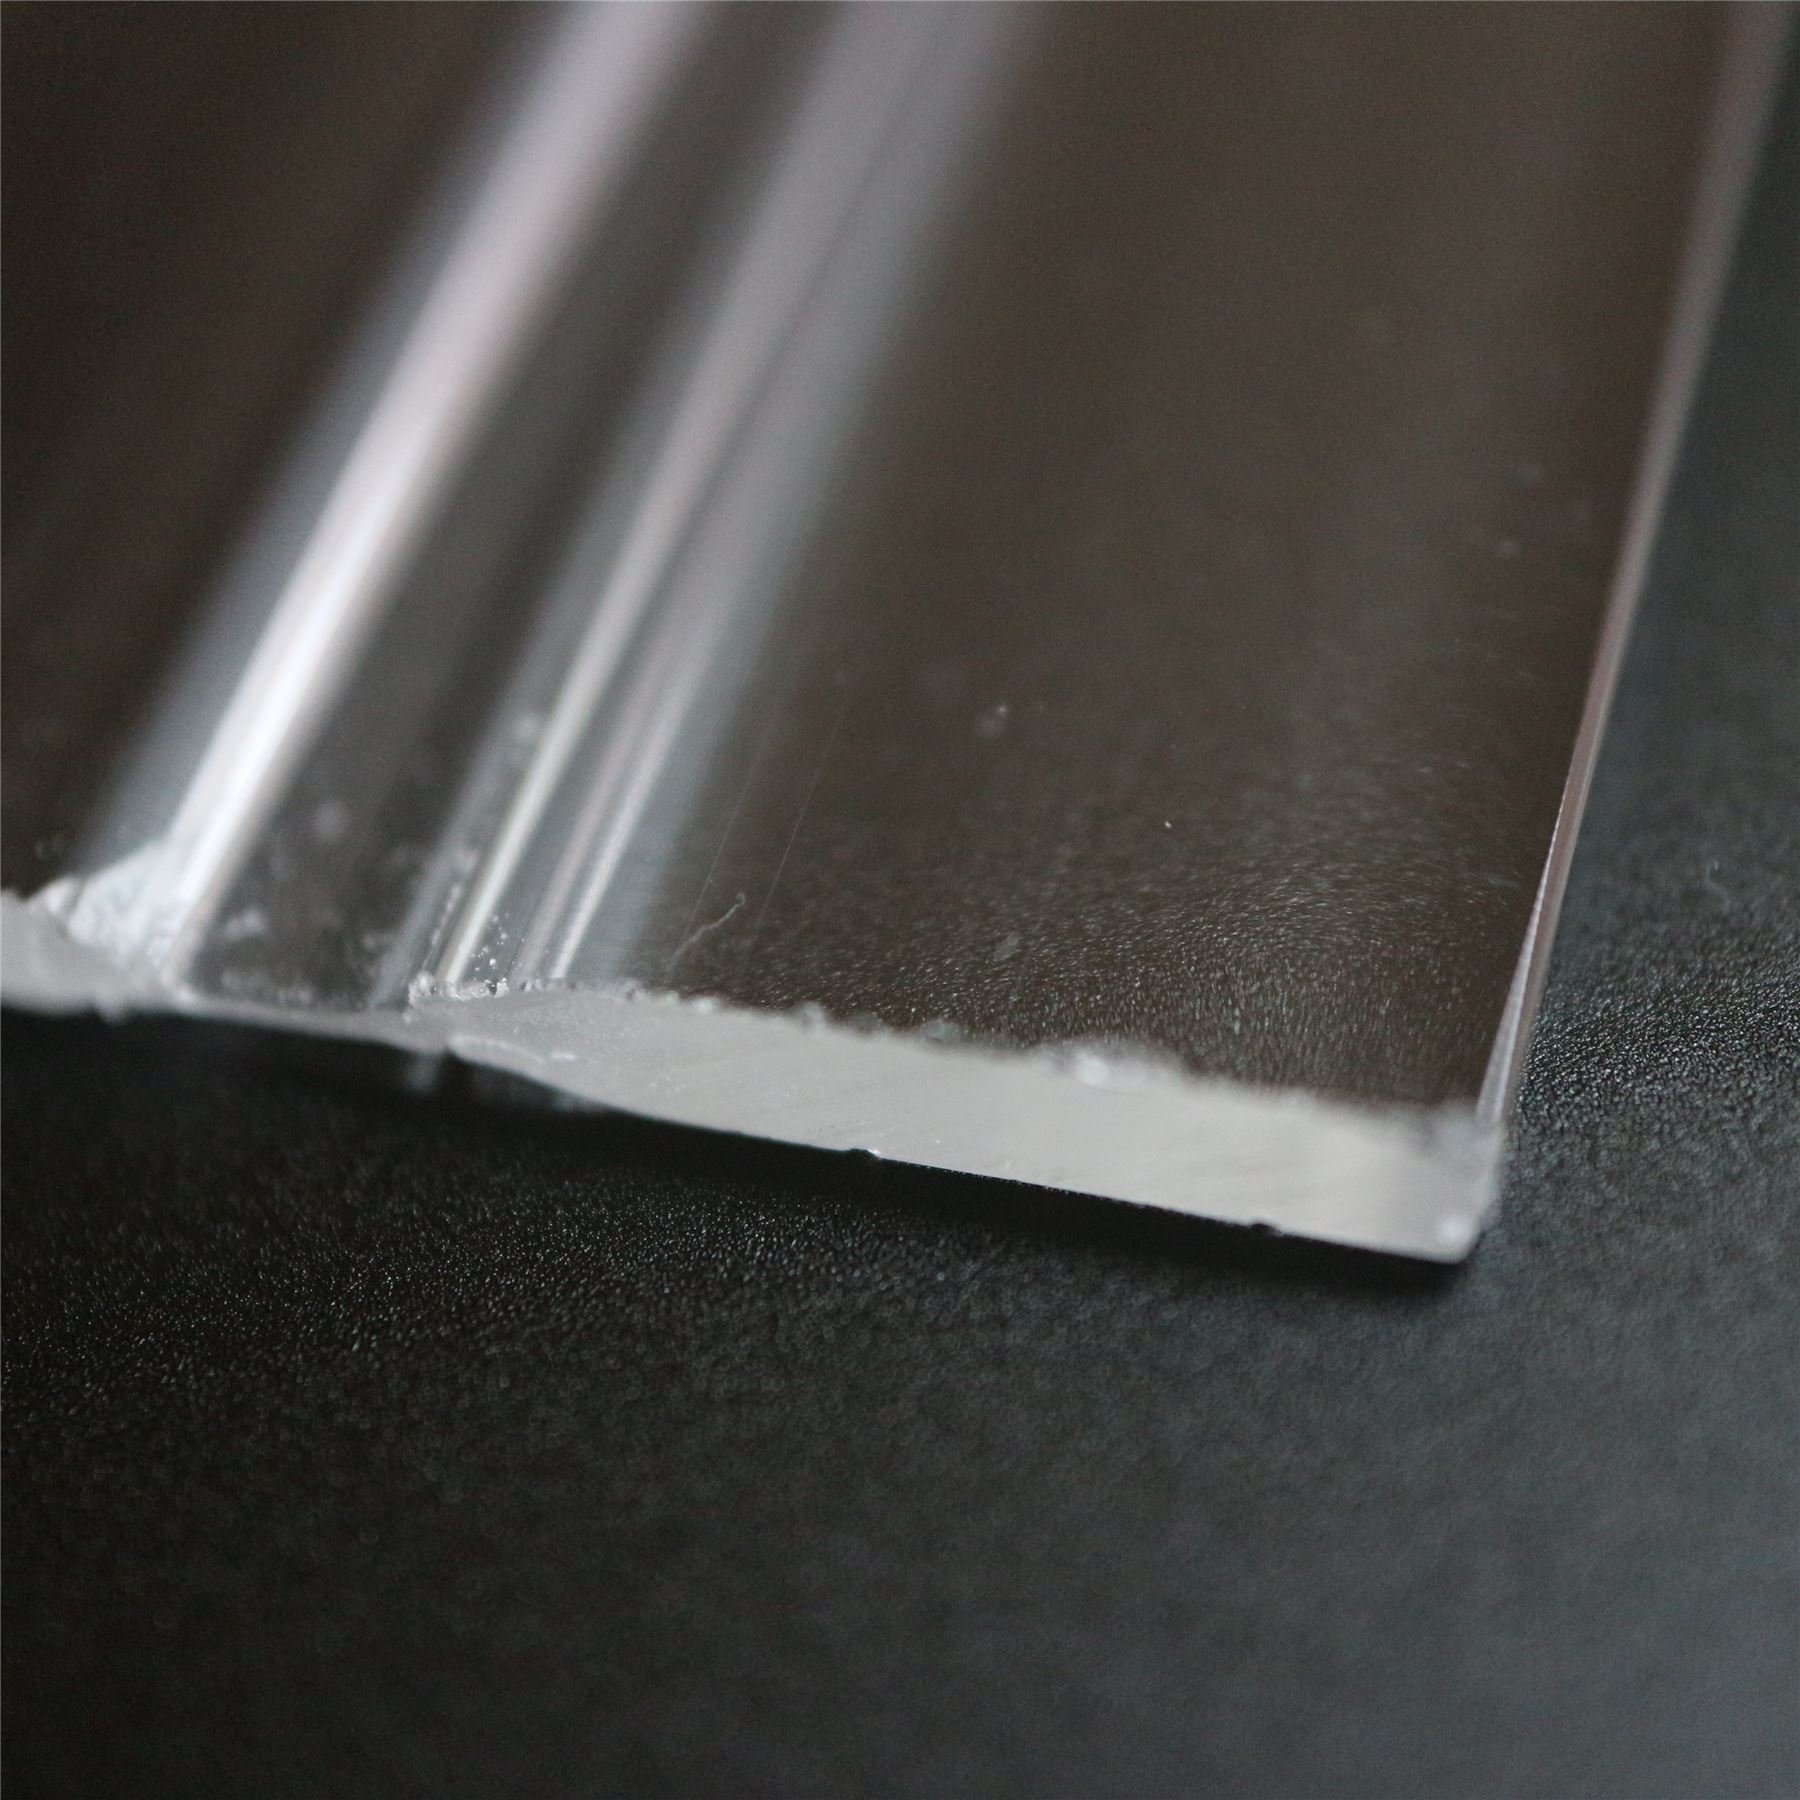 4 x 100mm low profile flex hinges, flexible living hinges, plexiglass, Transparent, Continuous Acrylic Piano Hinges